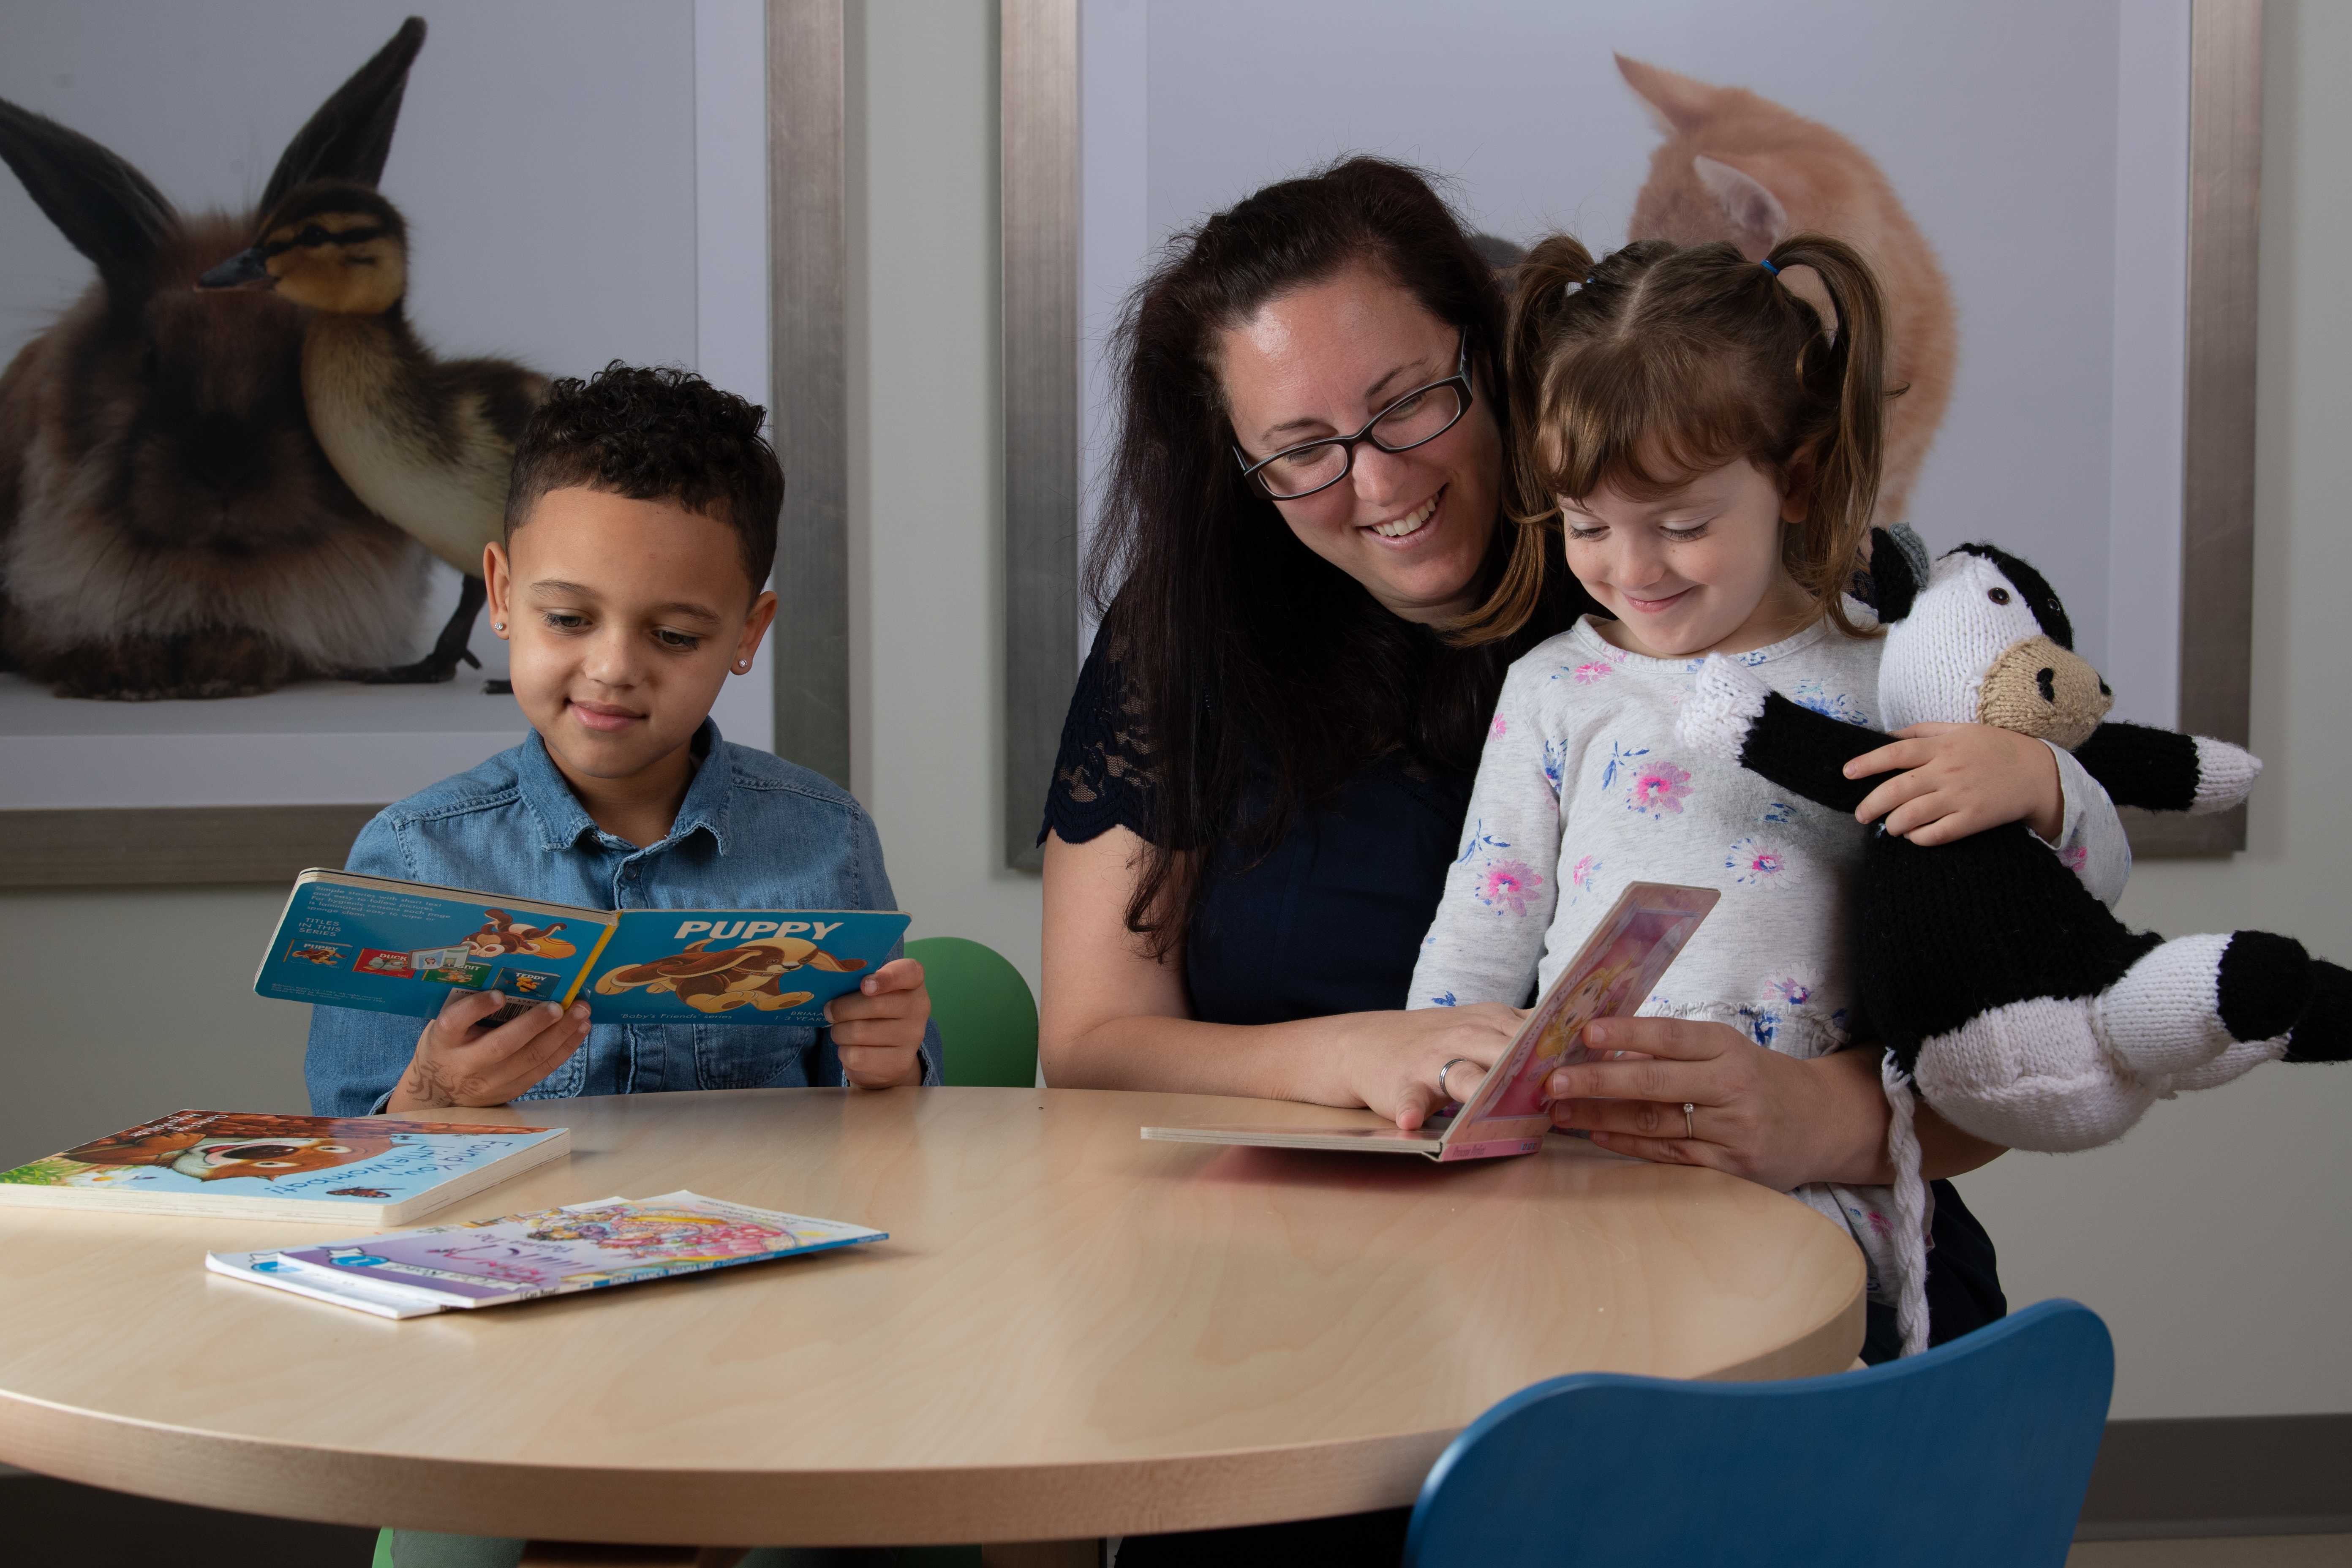 woman and two children playing while in hospital waiting room